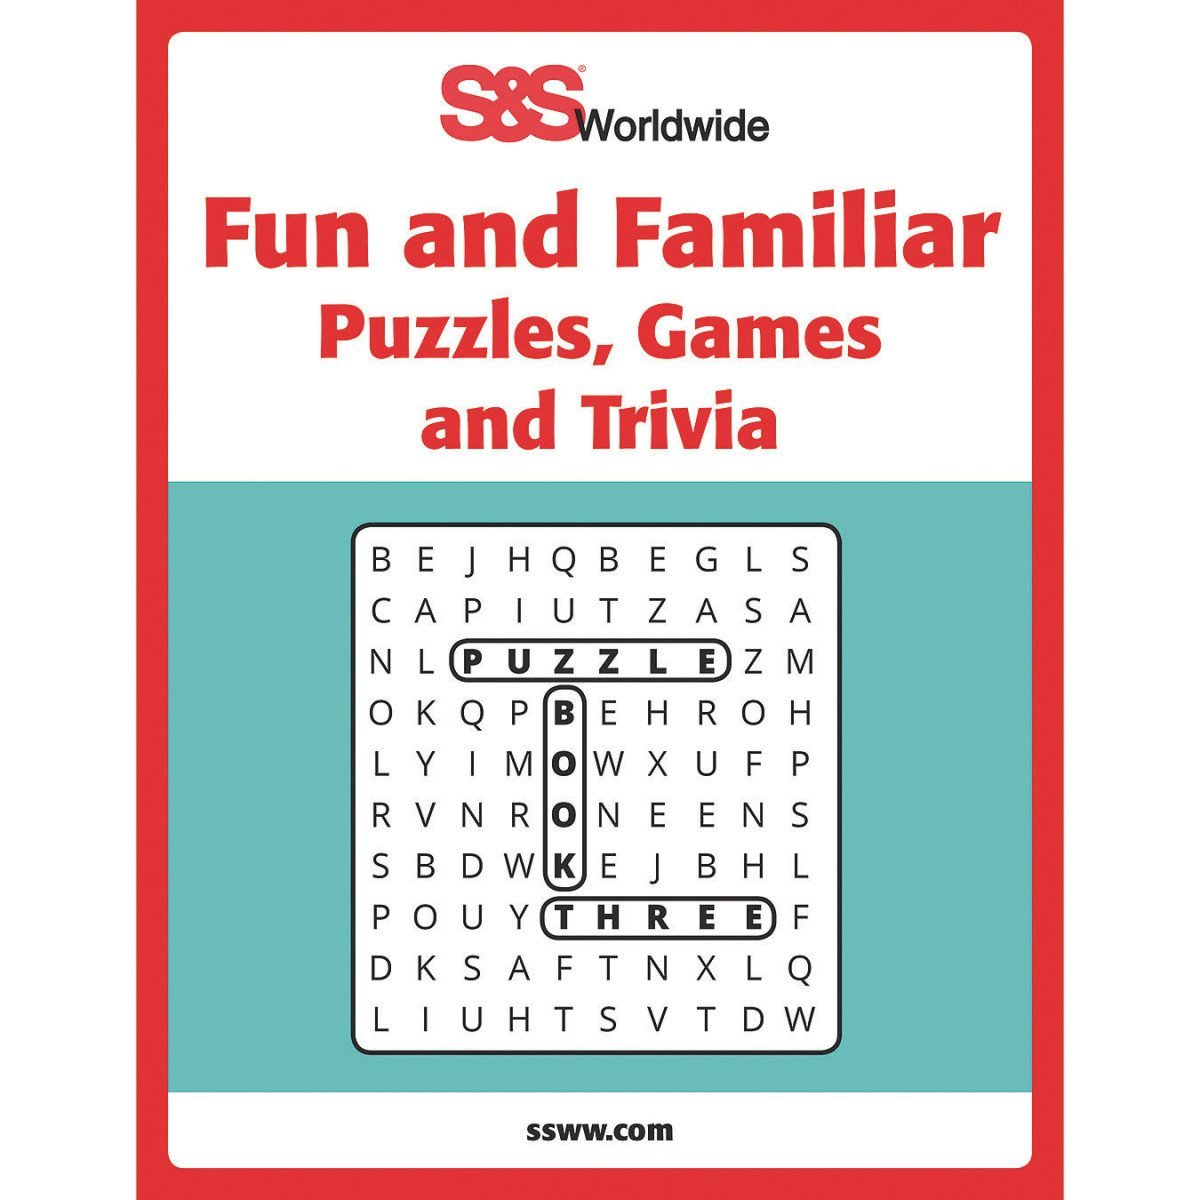 Comfortable Crossword Puzzle For Kids Thin Fire Staff Puzzle Round Griddlers Puzzles Free New York Times Crossword Puzzle Young Picture Puzzle Crossword Clue BluePuzzle Dragon X Cheap Fun Mmorpg Games, Find Fun Mmorpg Games Deals On Line At ..